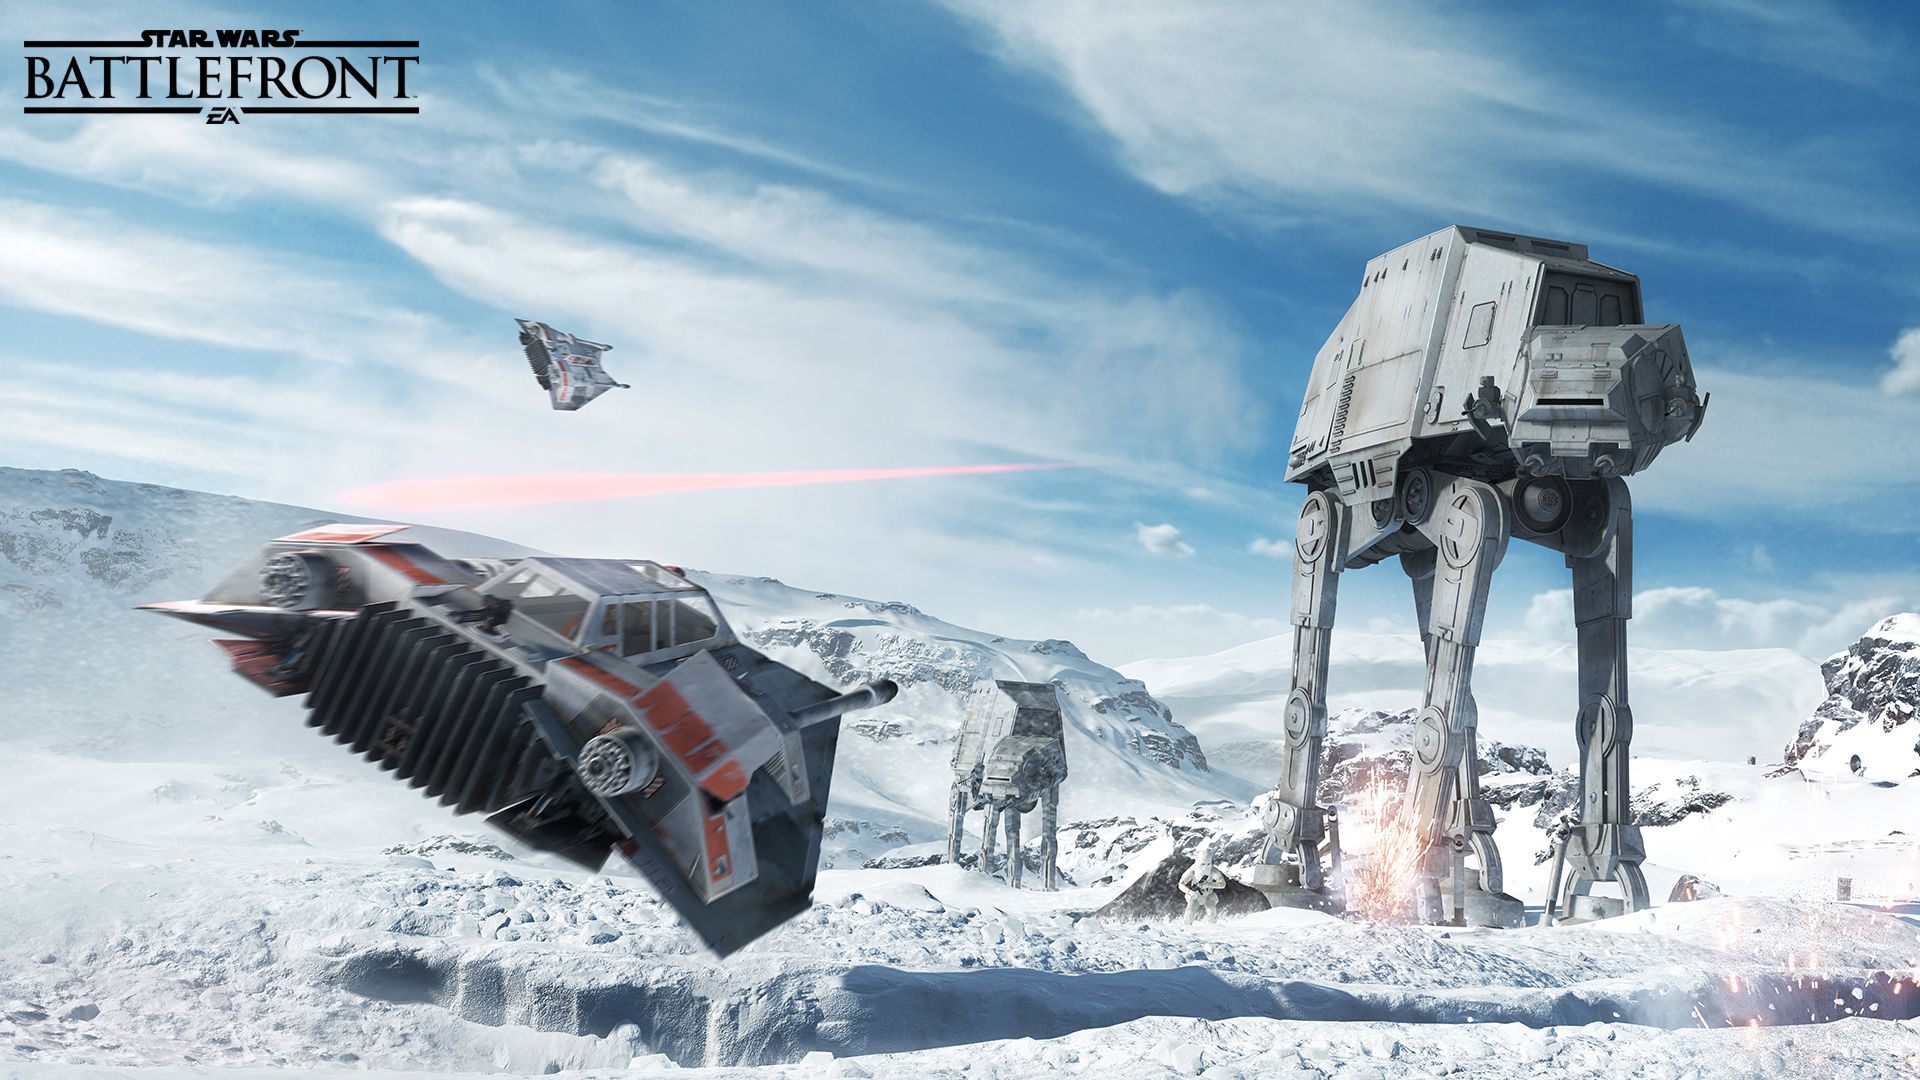 Star Wars Battlefront_4-17_A